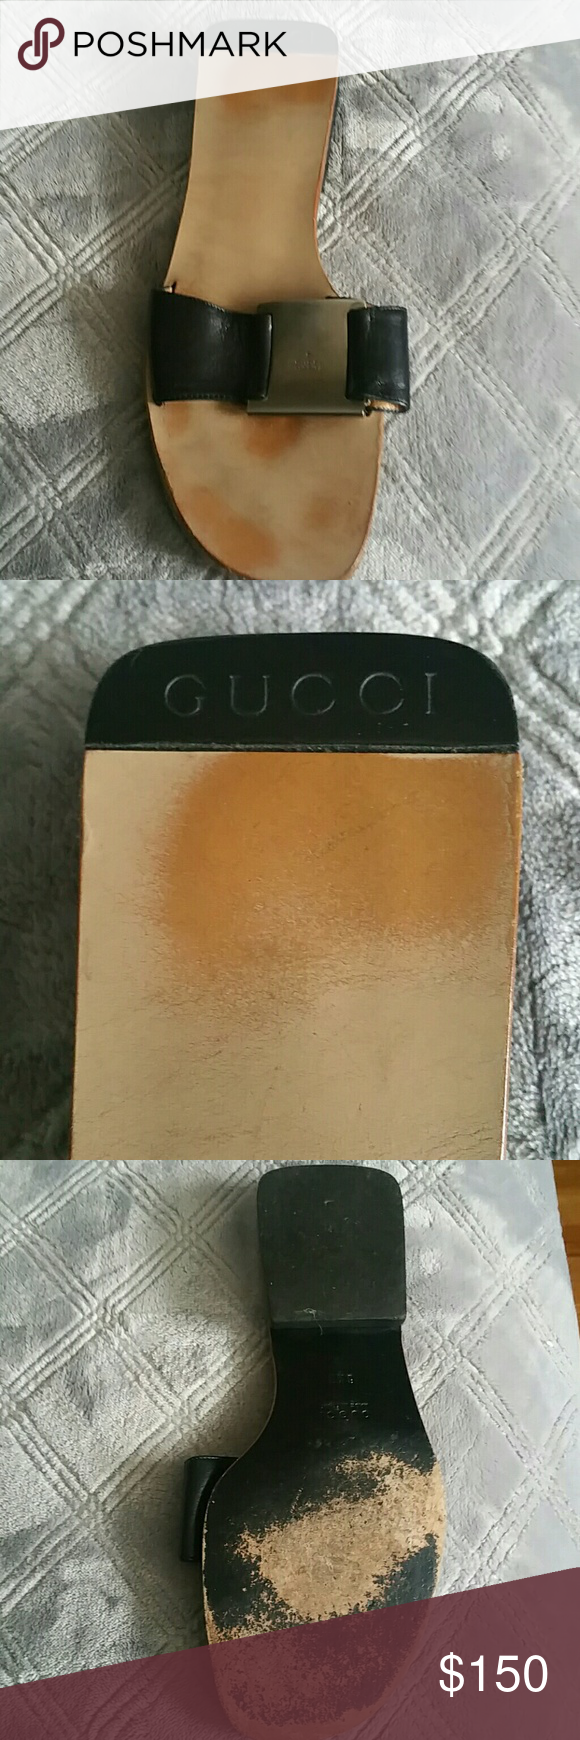 Gucci slide 6 1/2 Beautiful gucci slide excellent very lightly used condition with dust bag. PRICED TO SELL Gucci Shoes Sandals